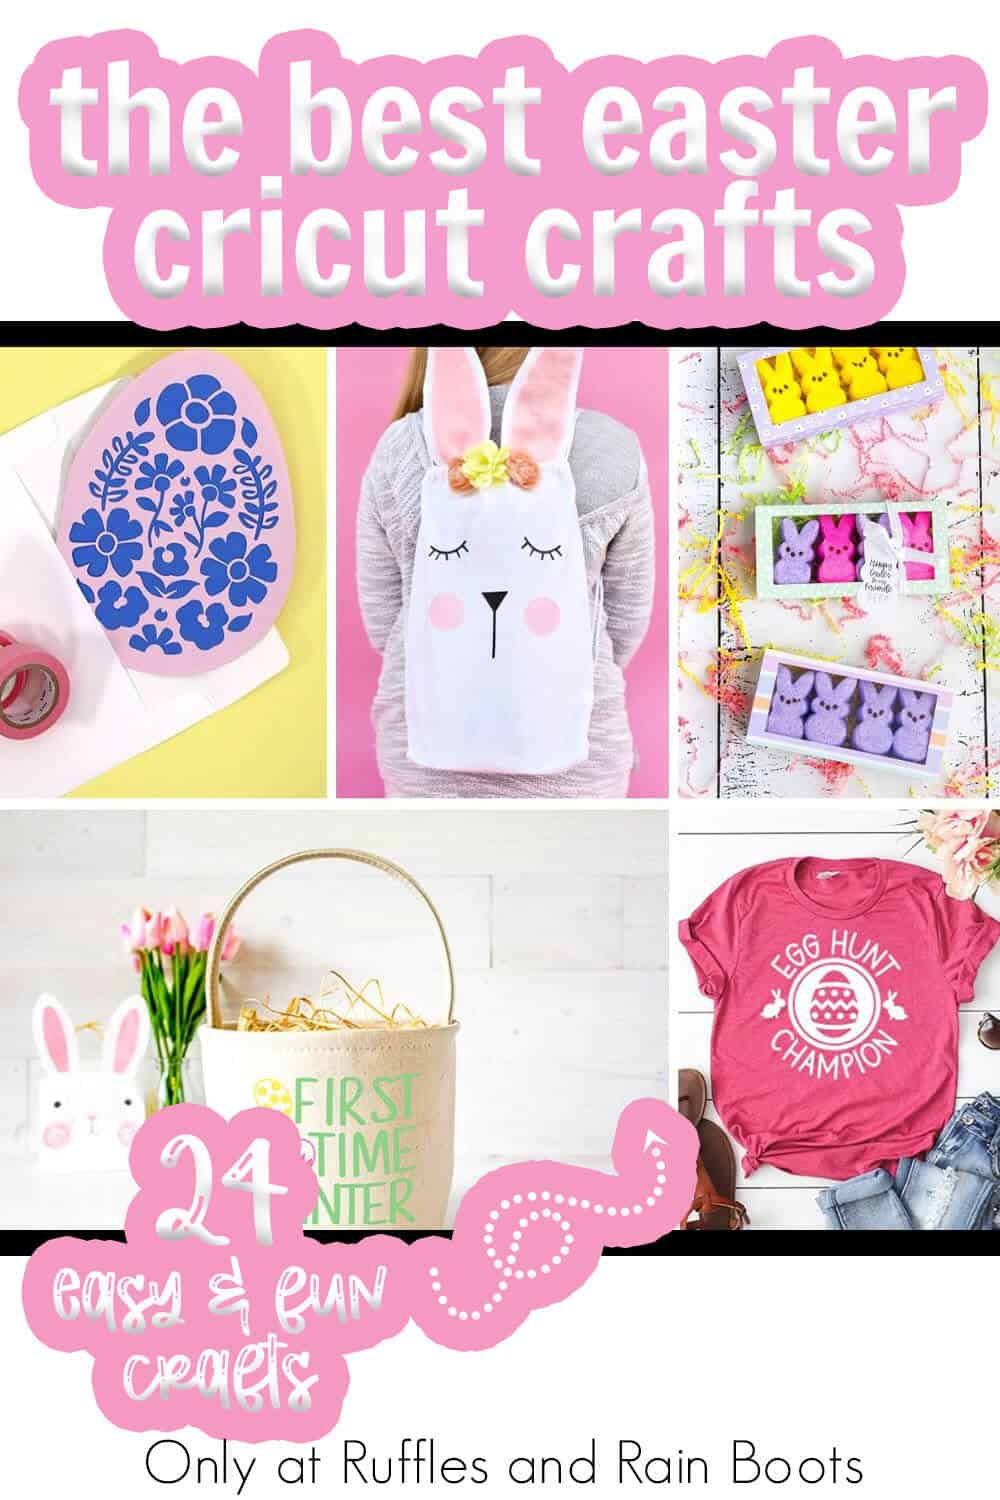 photo collage of cut file sets for easter crafts with text which reads the best easter cricut crafts 24 easy & fun crafts